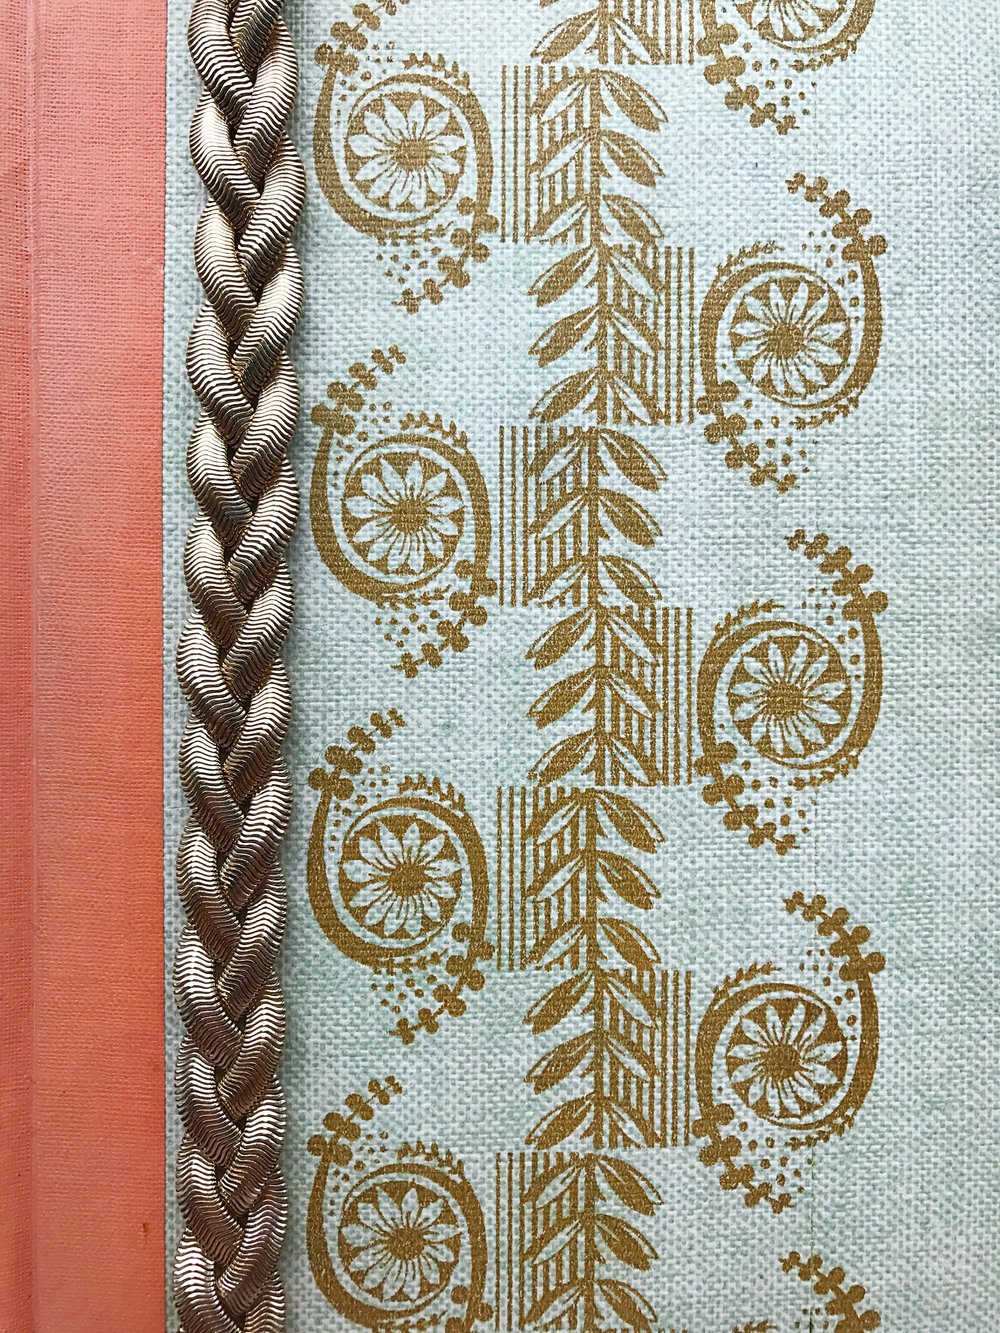 Camilla Pearl terracotta colour inspiration - an old antique book and the gold colour go really nicely together.